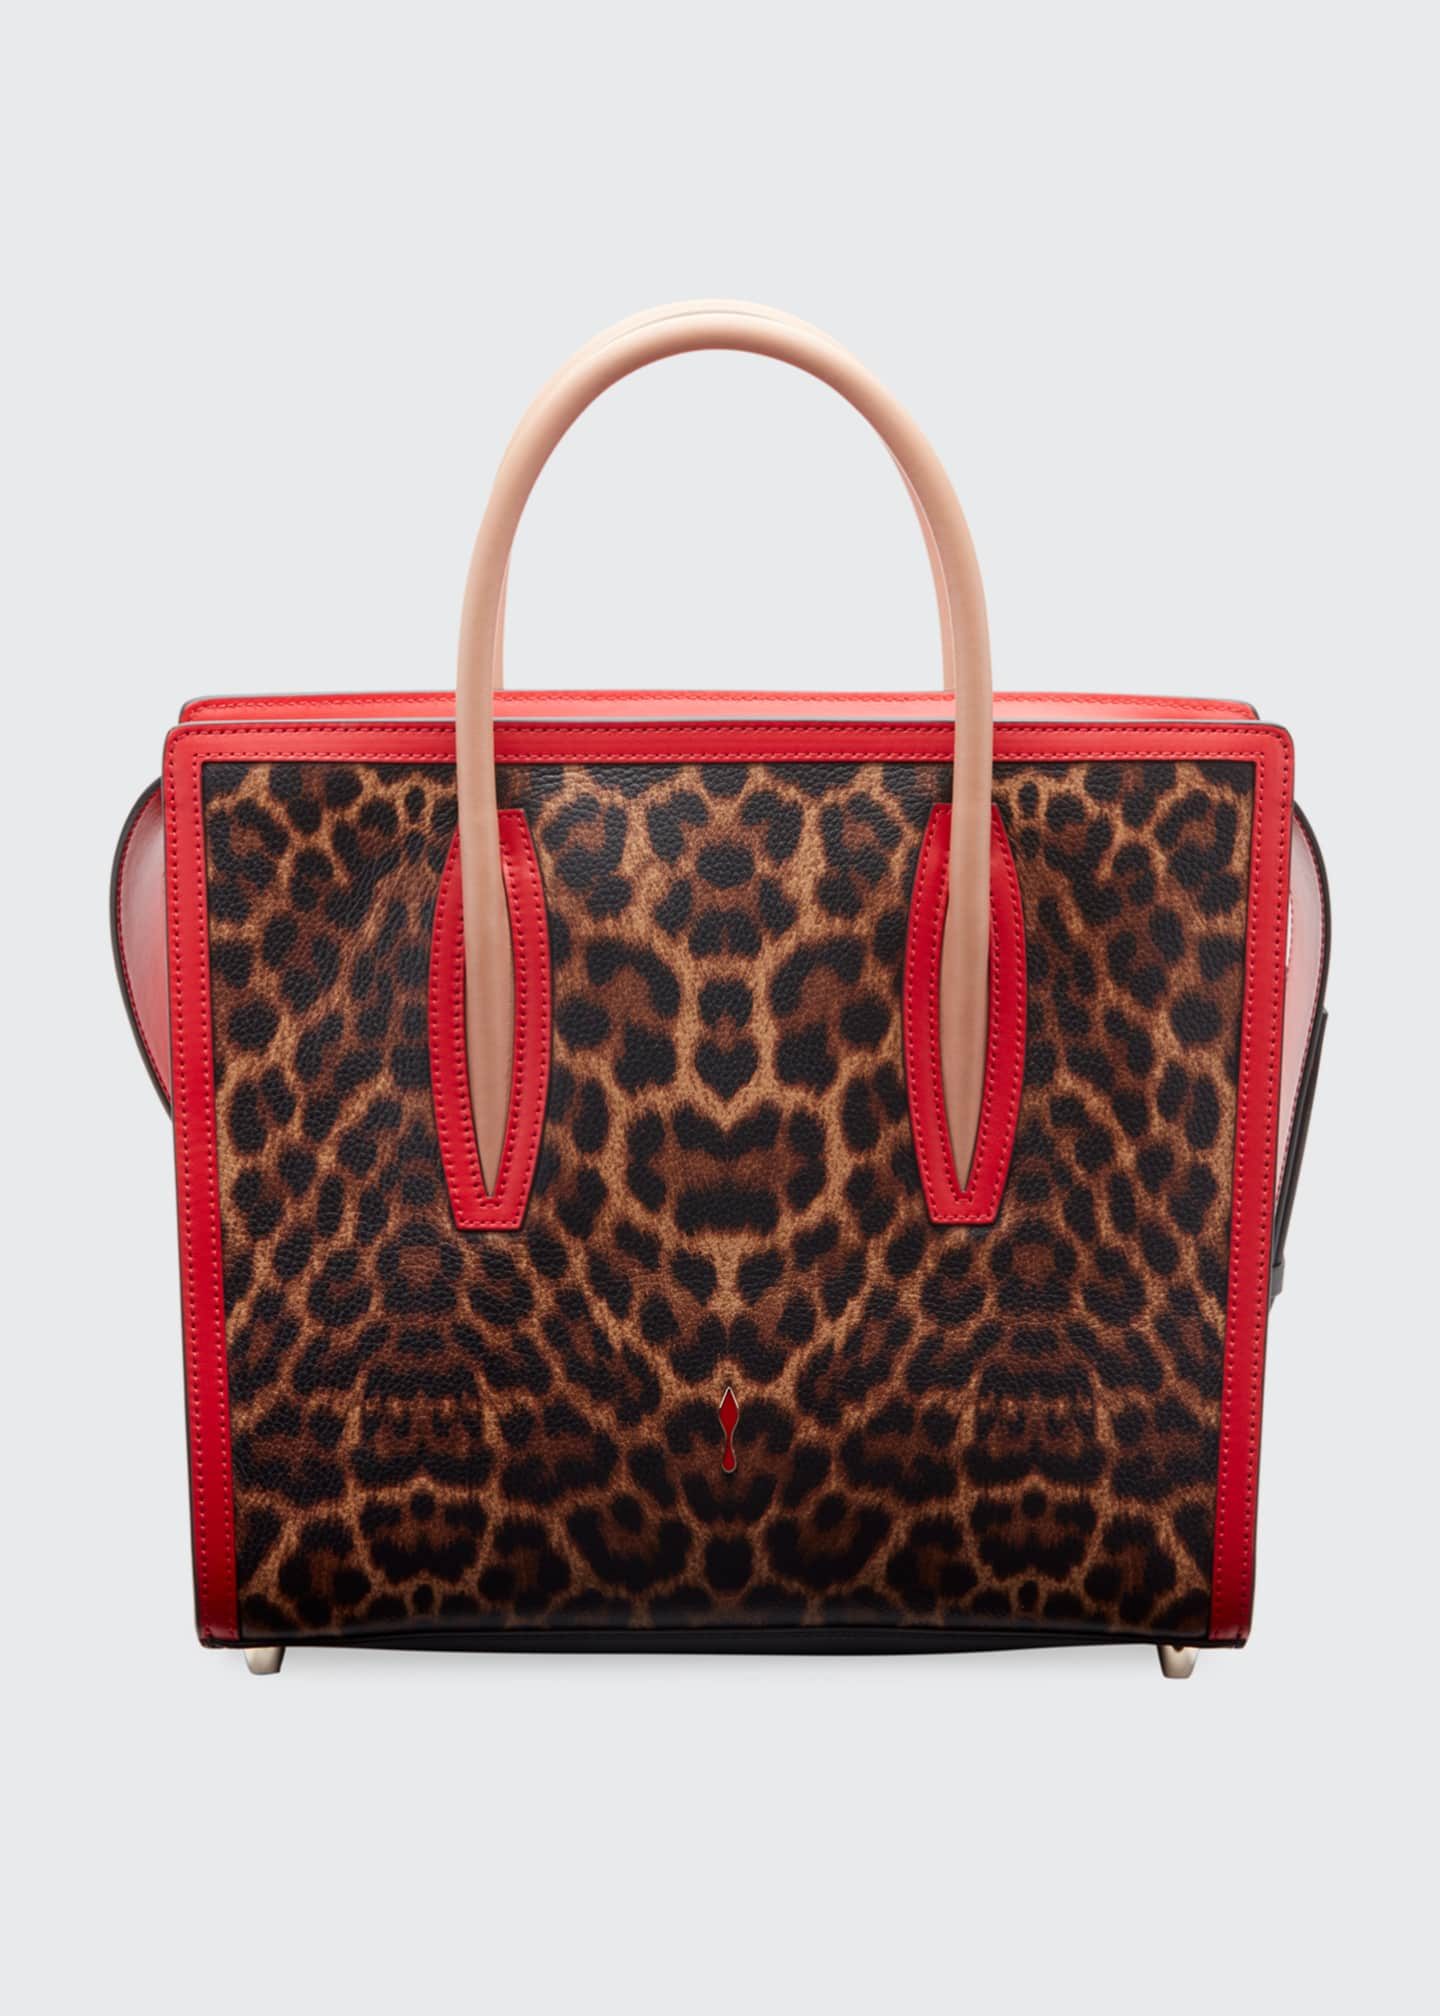 Christian Louboutin Paloma Medium Empire Leopard Tote Bag